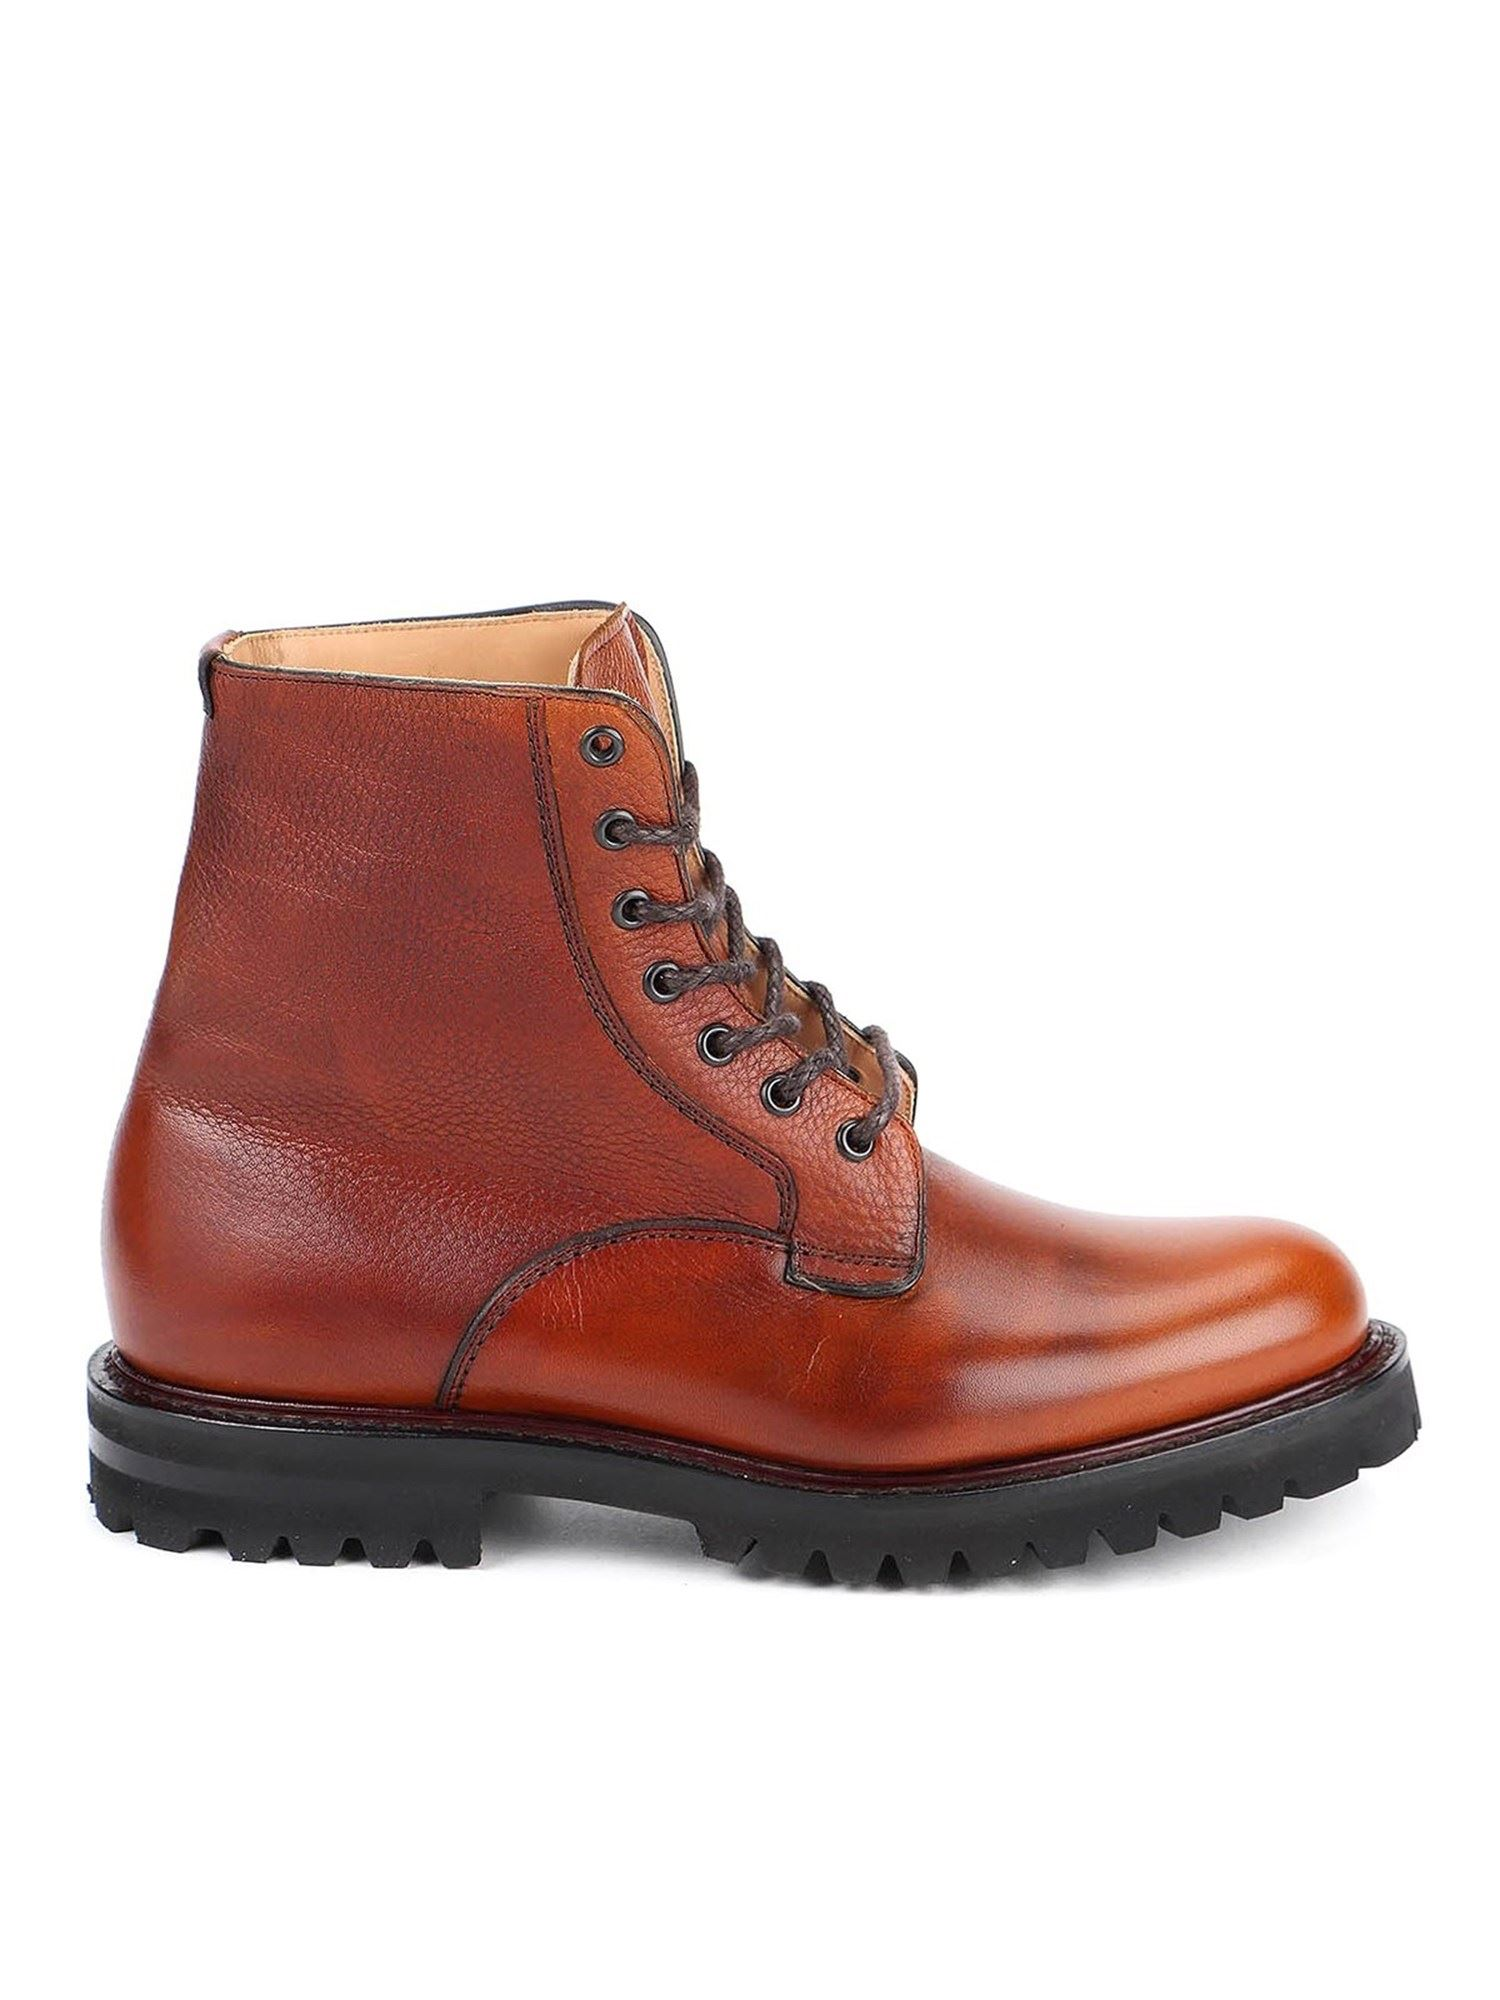 CHURCH'S COALPORT 2 COMBAT BOOTS IN BROWN